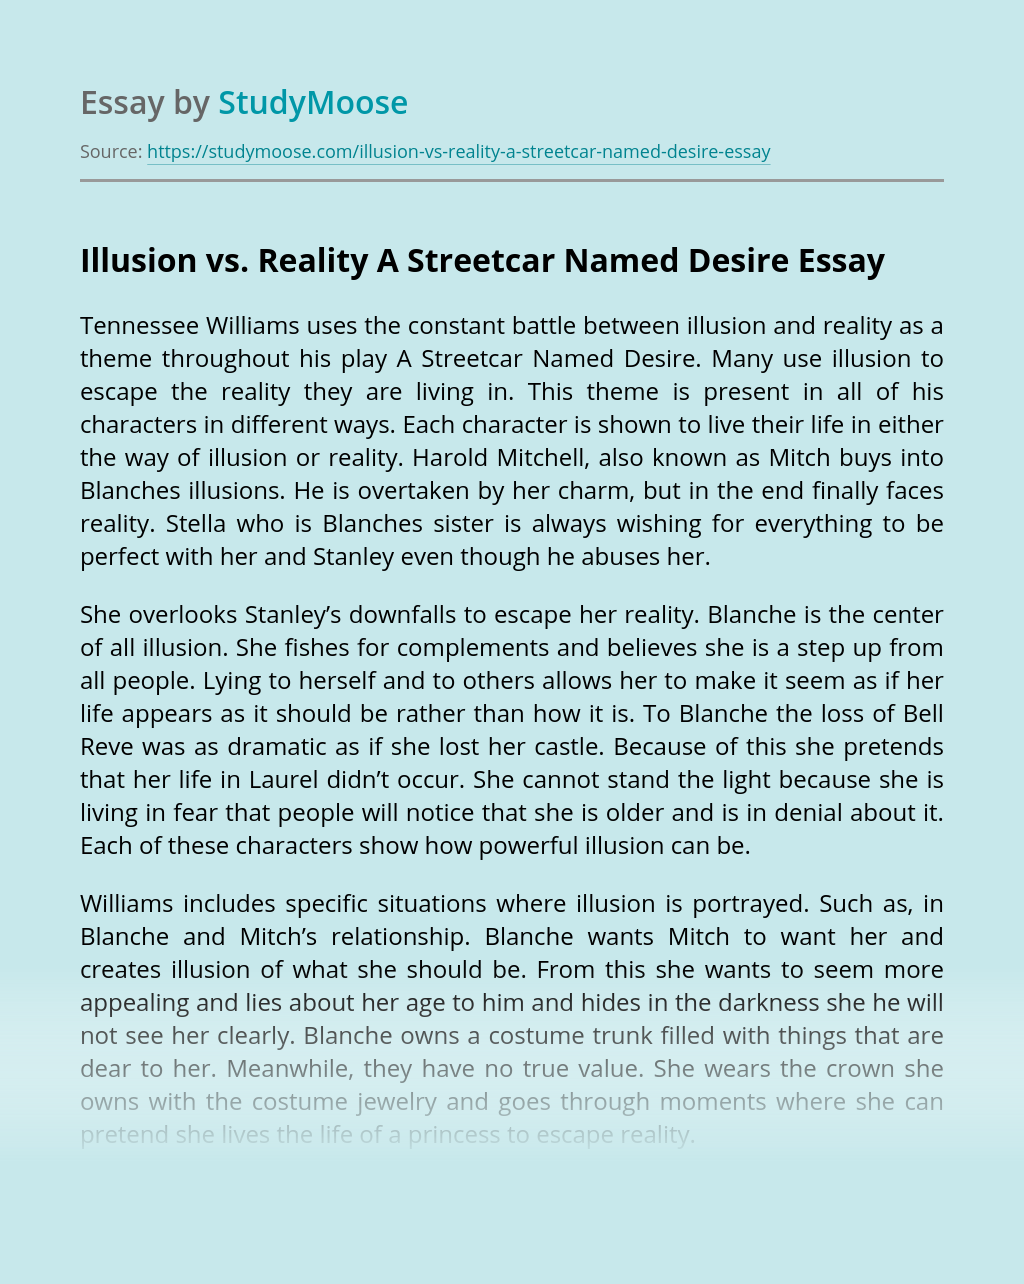 Illusion vs. Reality A Streetcar Named Desire